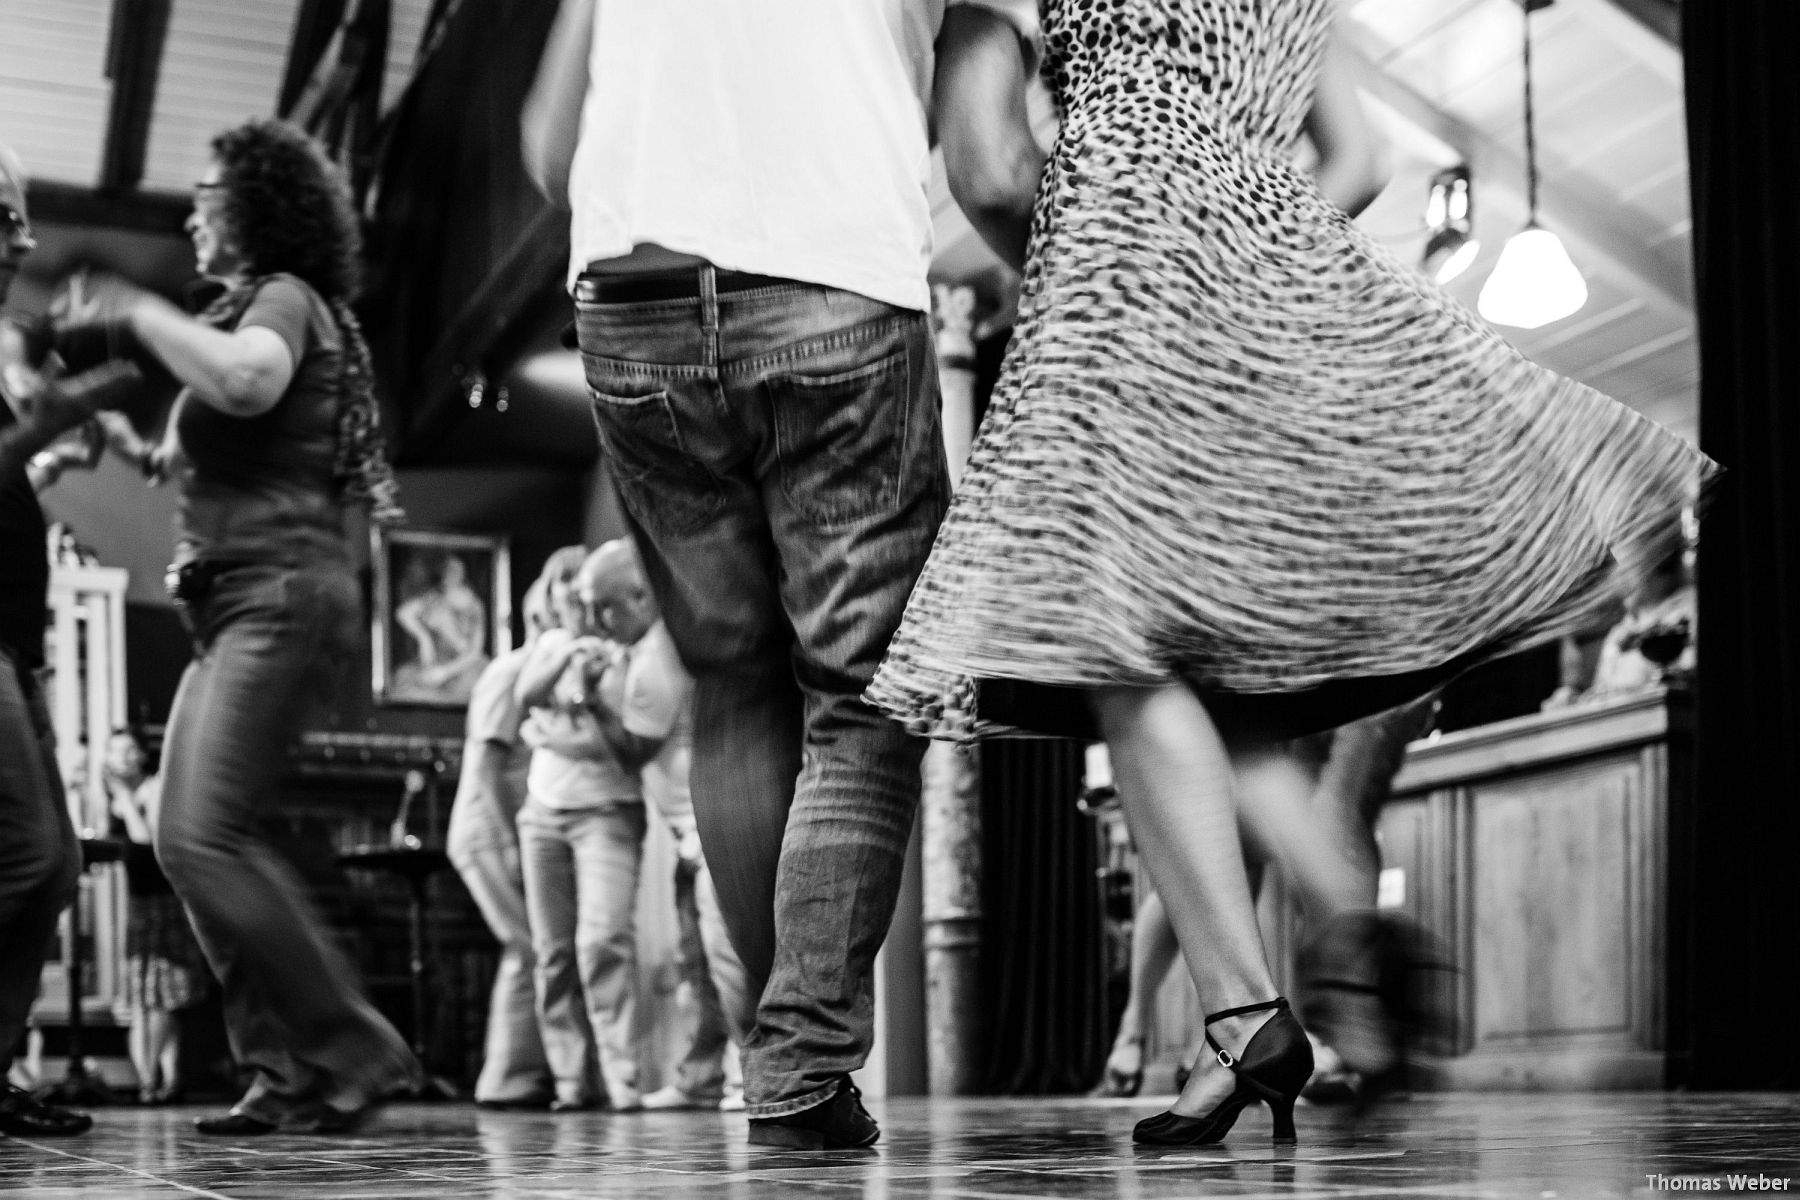 Fotograf Thomas Weber aus Oldenburg: Salsa- und Tango-Abende im Theater Laboratorium Oldenburg (33)